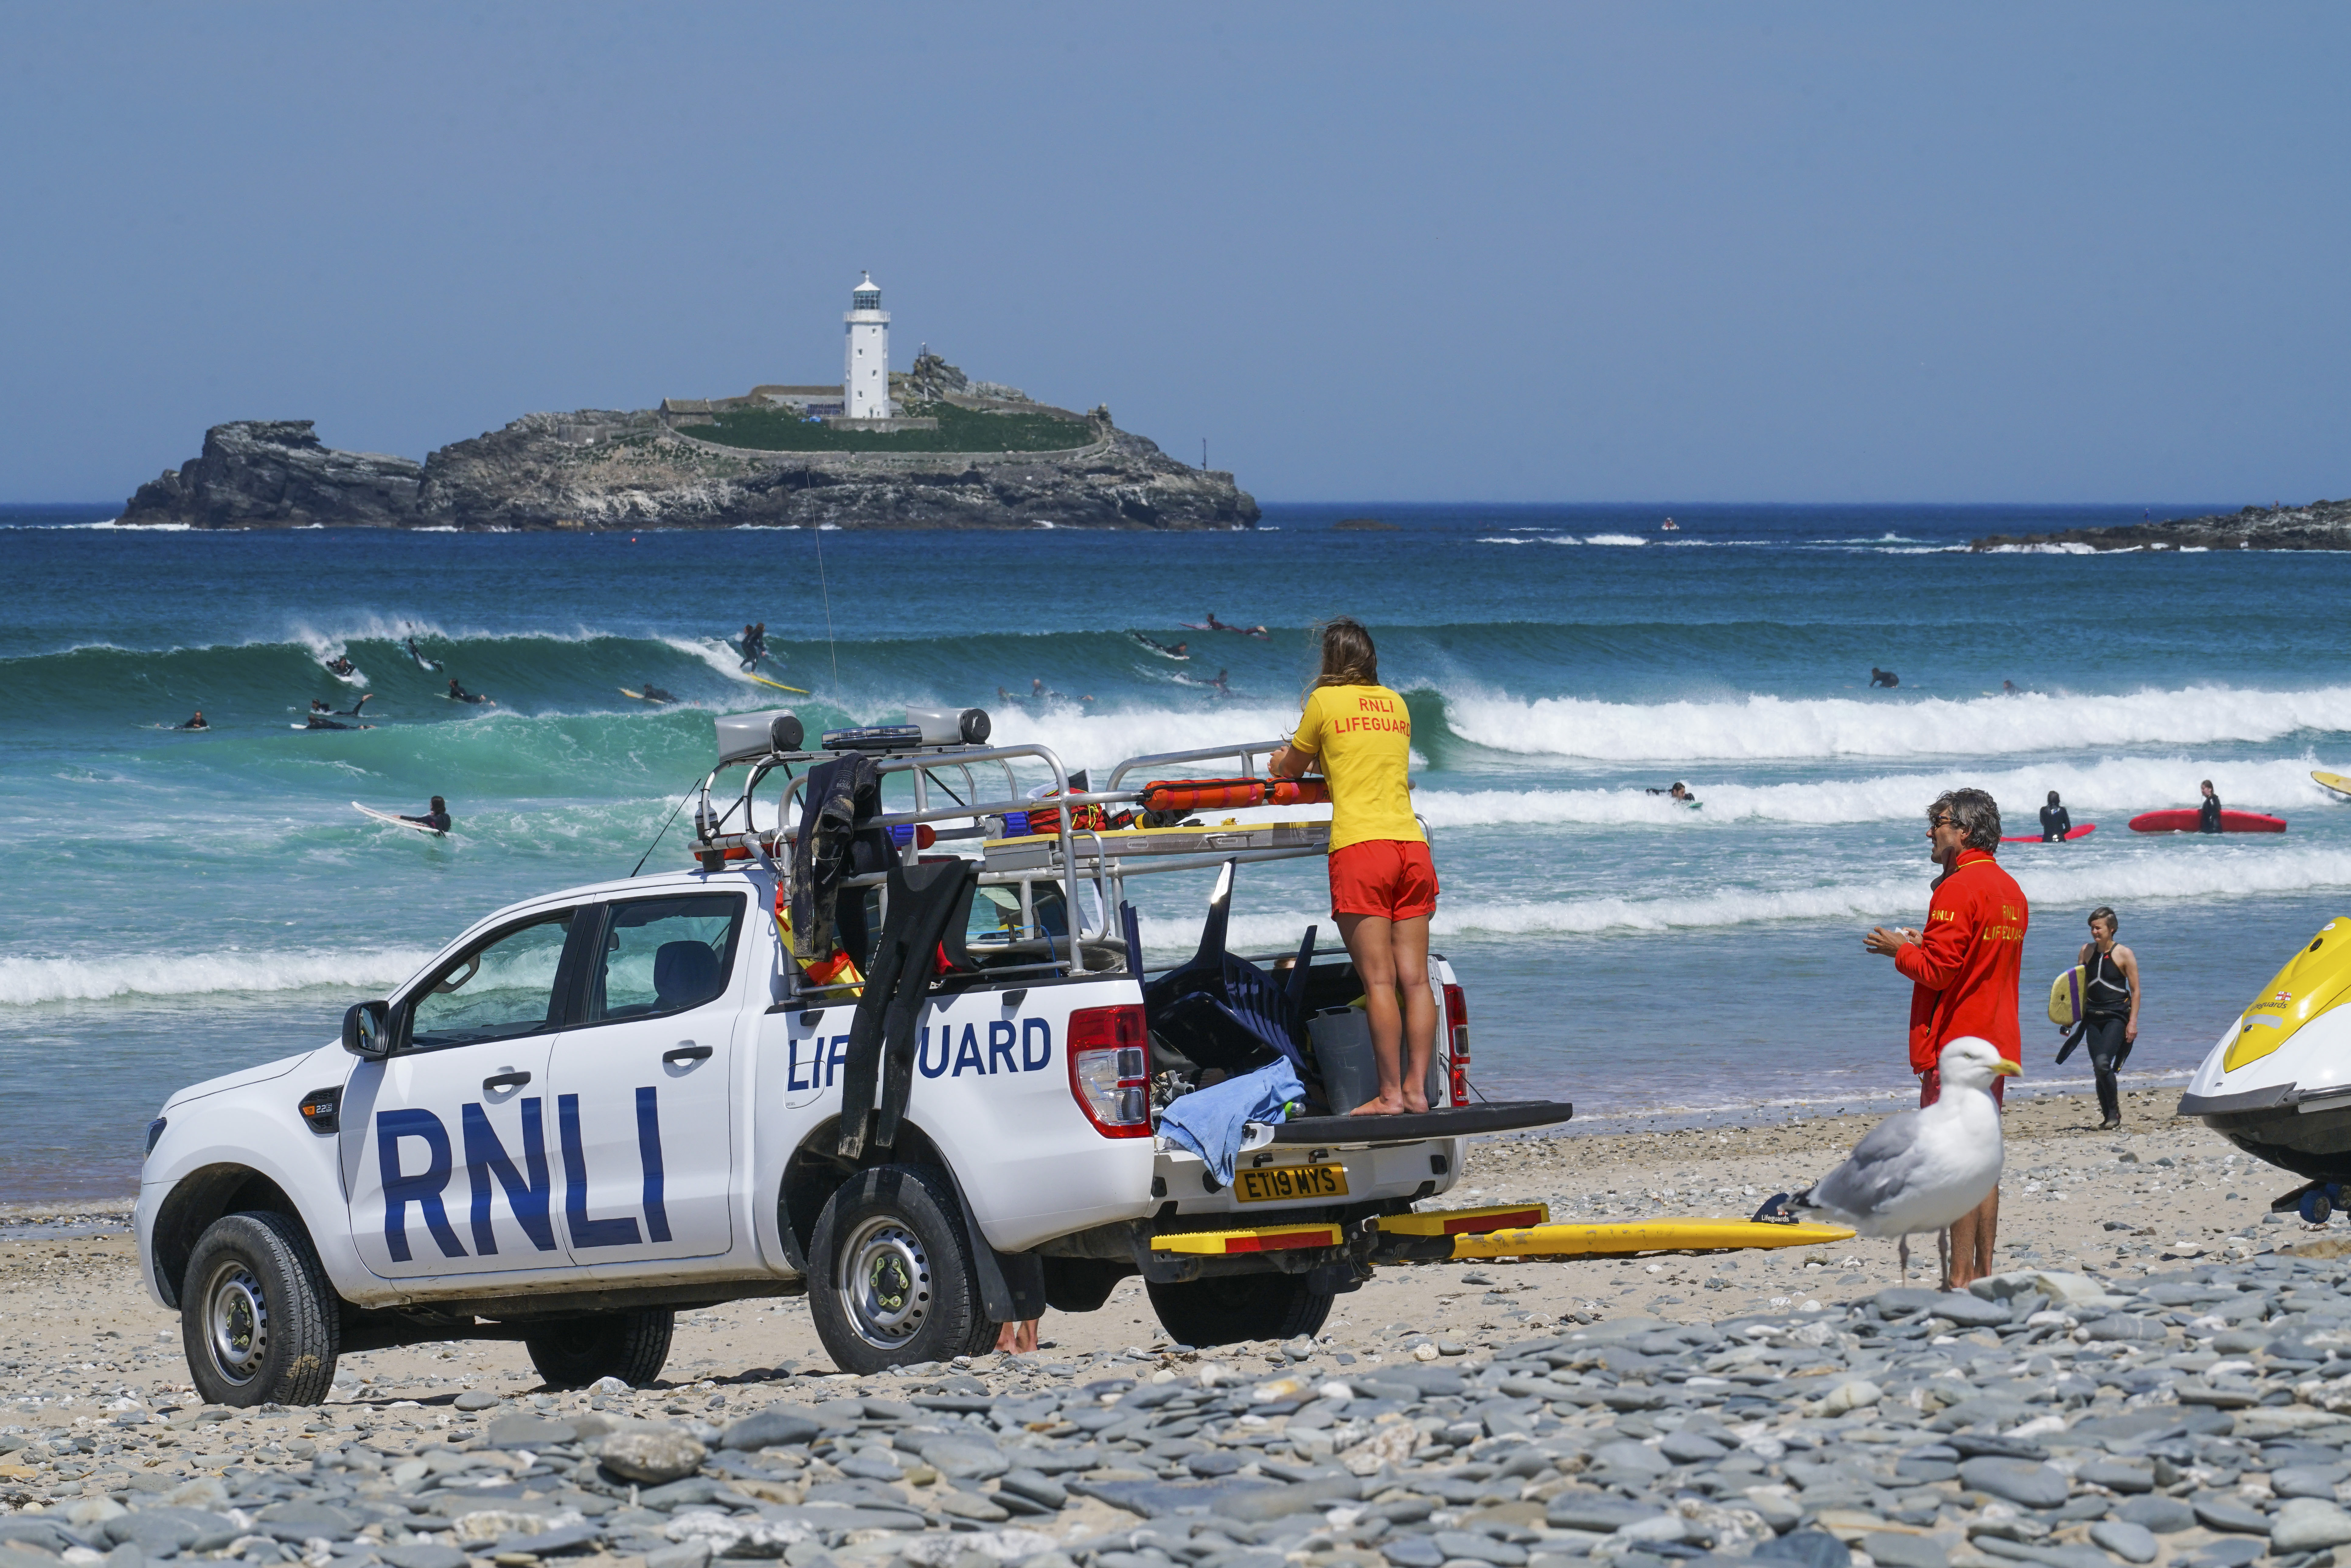 GWITHIAN, HAYLE, UNITED KINGDOM - MAY 31: RNLI lifeguards on duty at Gwithian beach on May 31, 2020 in Gwithian, United Kingdom. Lifeguards returned at Gwithian and six other Cornish beaches this weekend after being absent since the start of the UK Covid-19 lockdown. Cornwall Council has been working with the RNLI to have the cover restored as people flock to beaches in the warm weather. The British government has started easing the lockdown it imposed two months ago to curb the spread of the Covid-19. (Photo by Hugh Hastings/Getty Images)